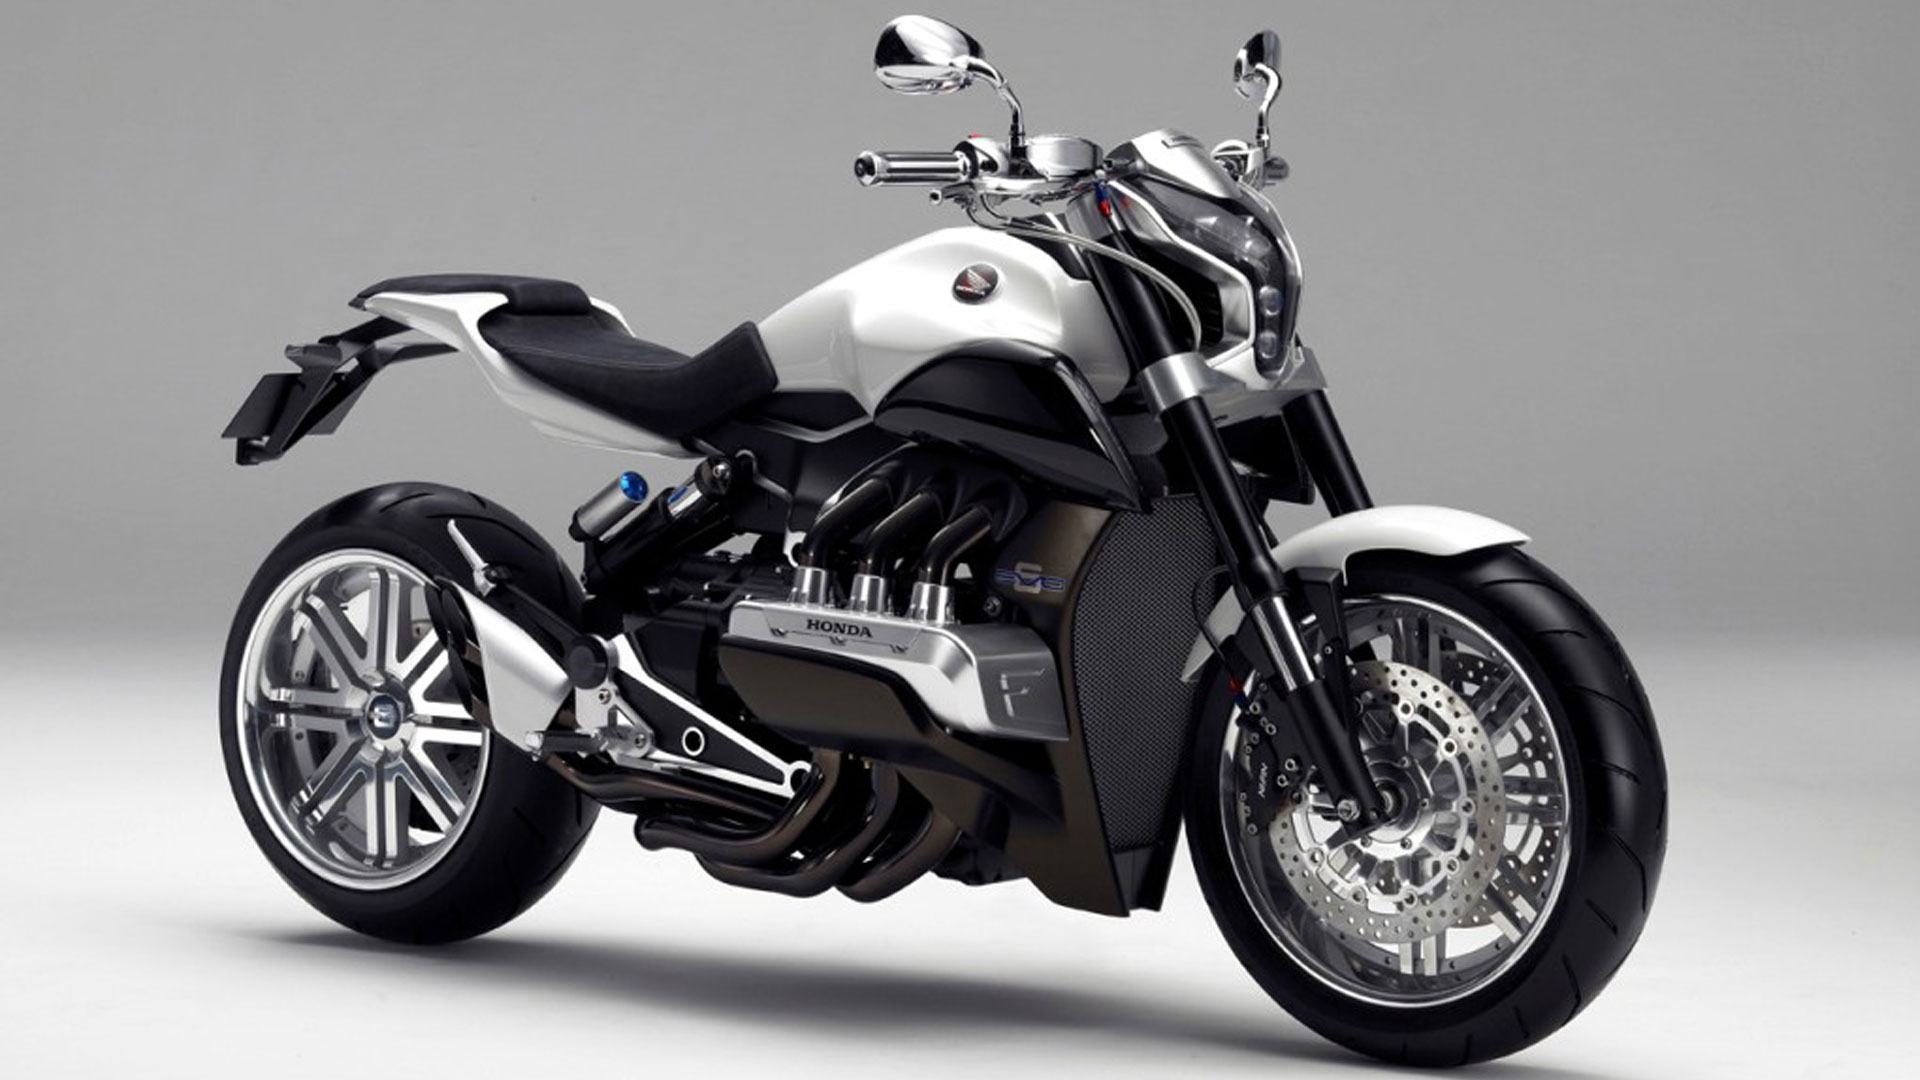 Honda Gold Wing F6C 2015 images #83217